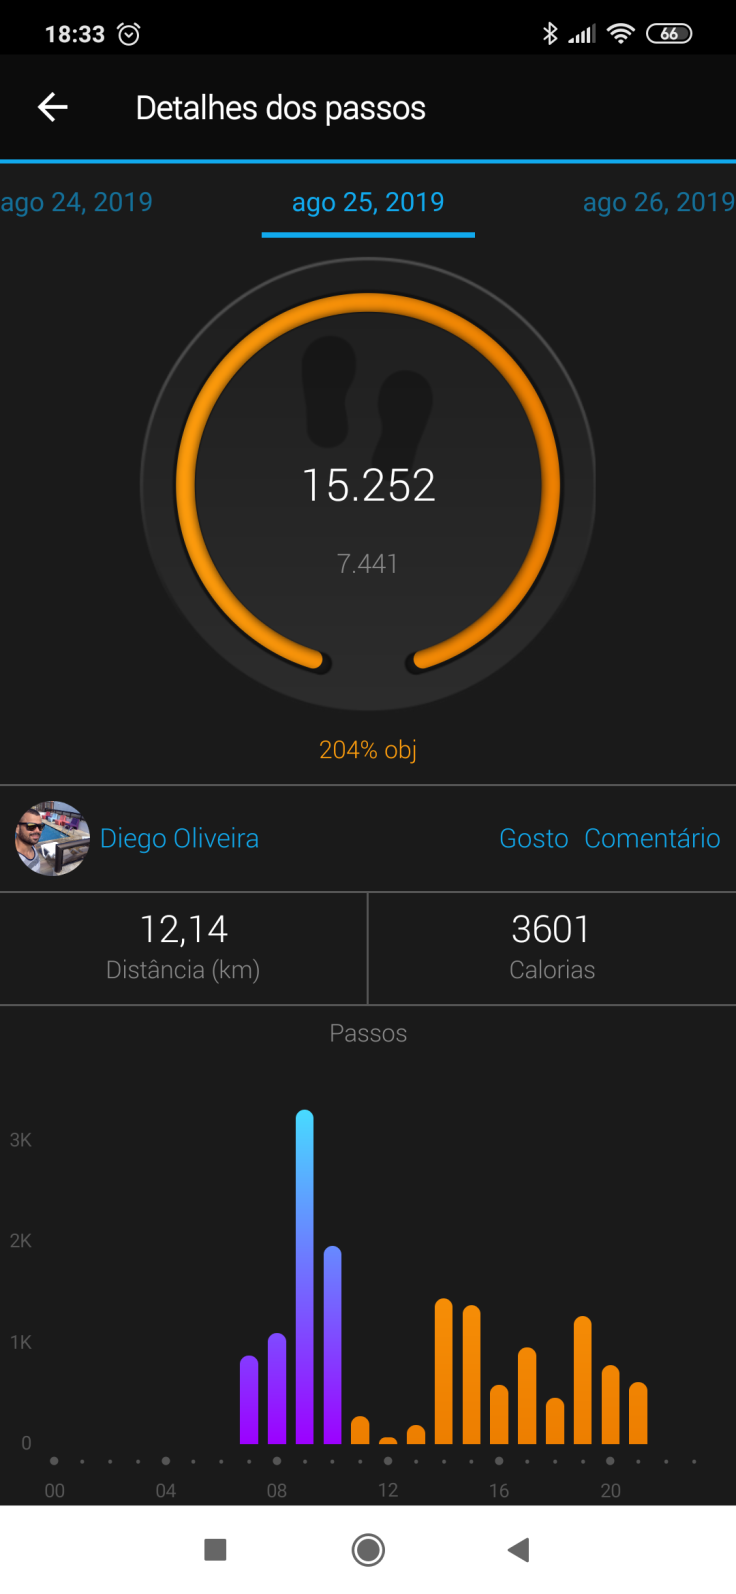 Screenshot_2019-09-03-18-33-00-810_com.garmin.android.apps.connectmobile